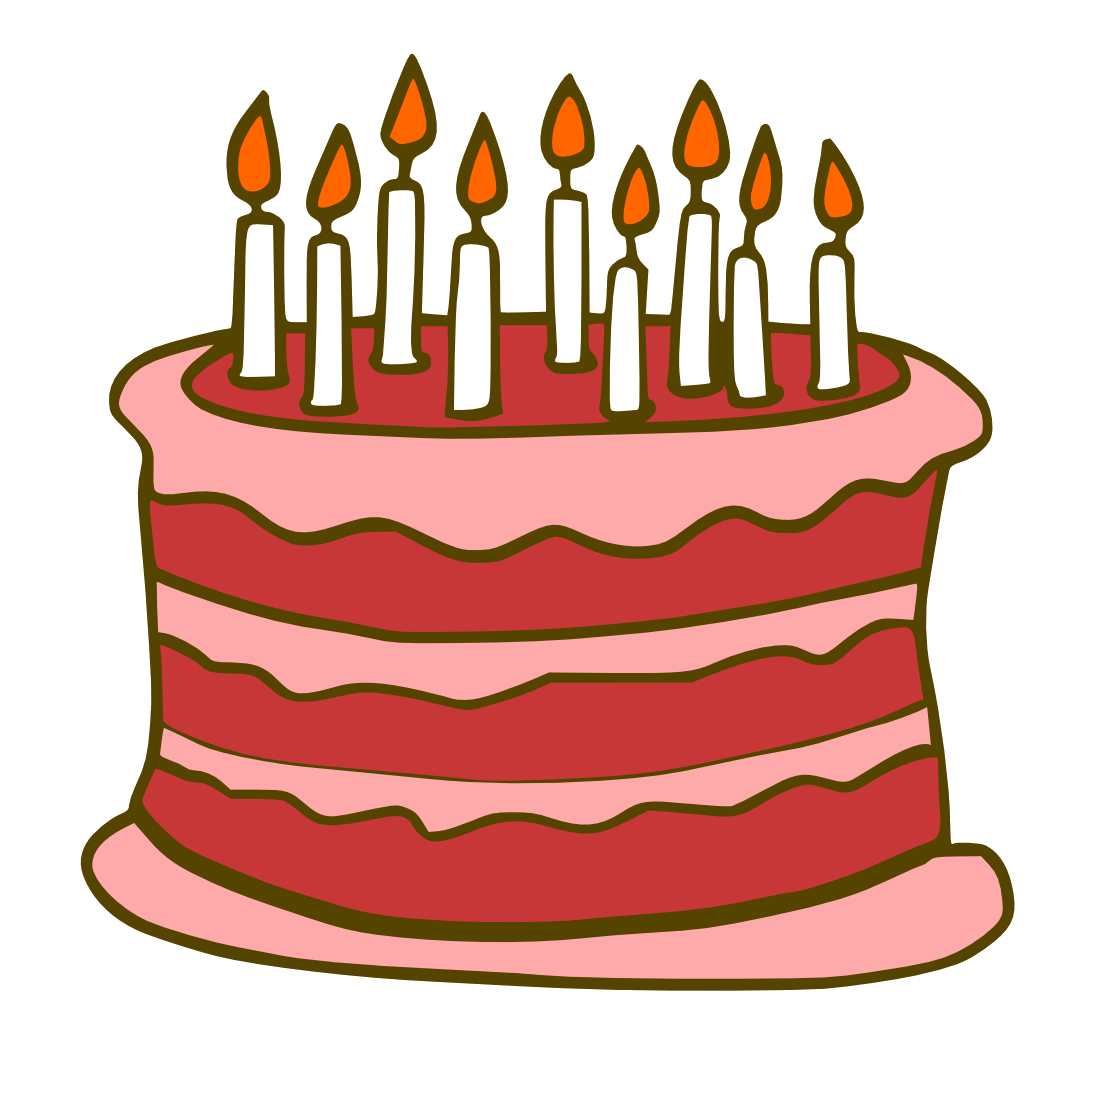 Birthday Cake Images Free Download Birthday Cake Free Download Png Png All